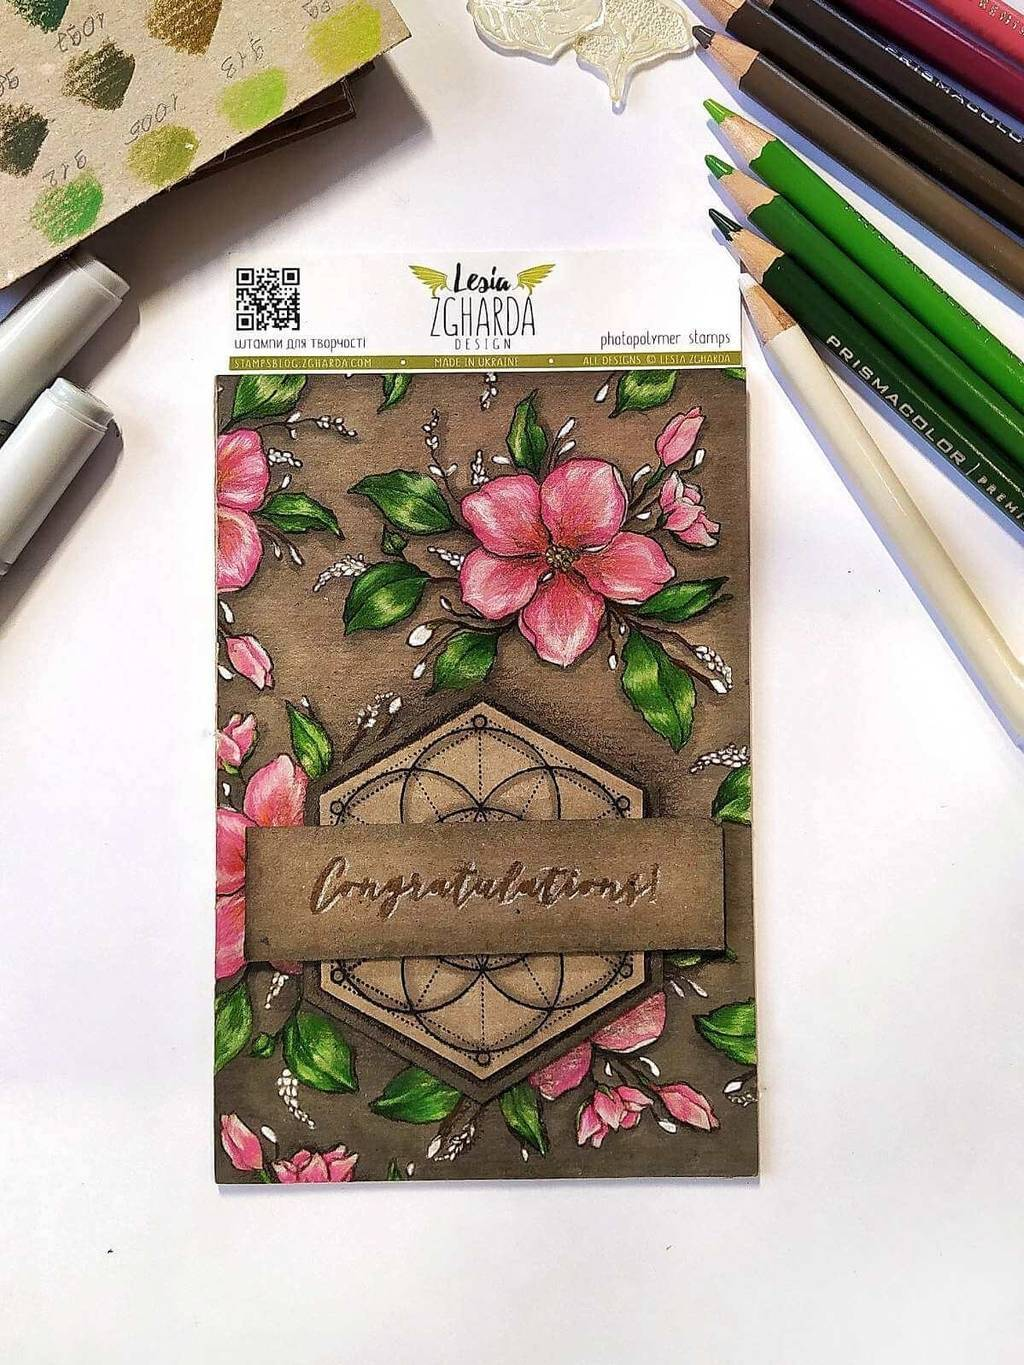 Image - Using the congratulation sentiment stamp on stamped card and shading with pencils by Lesia Zgharda clear stamps.